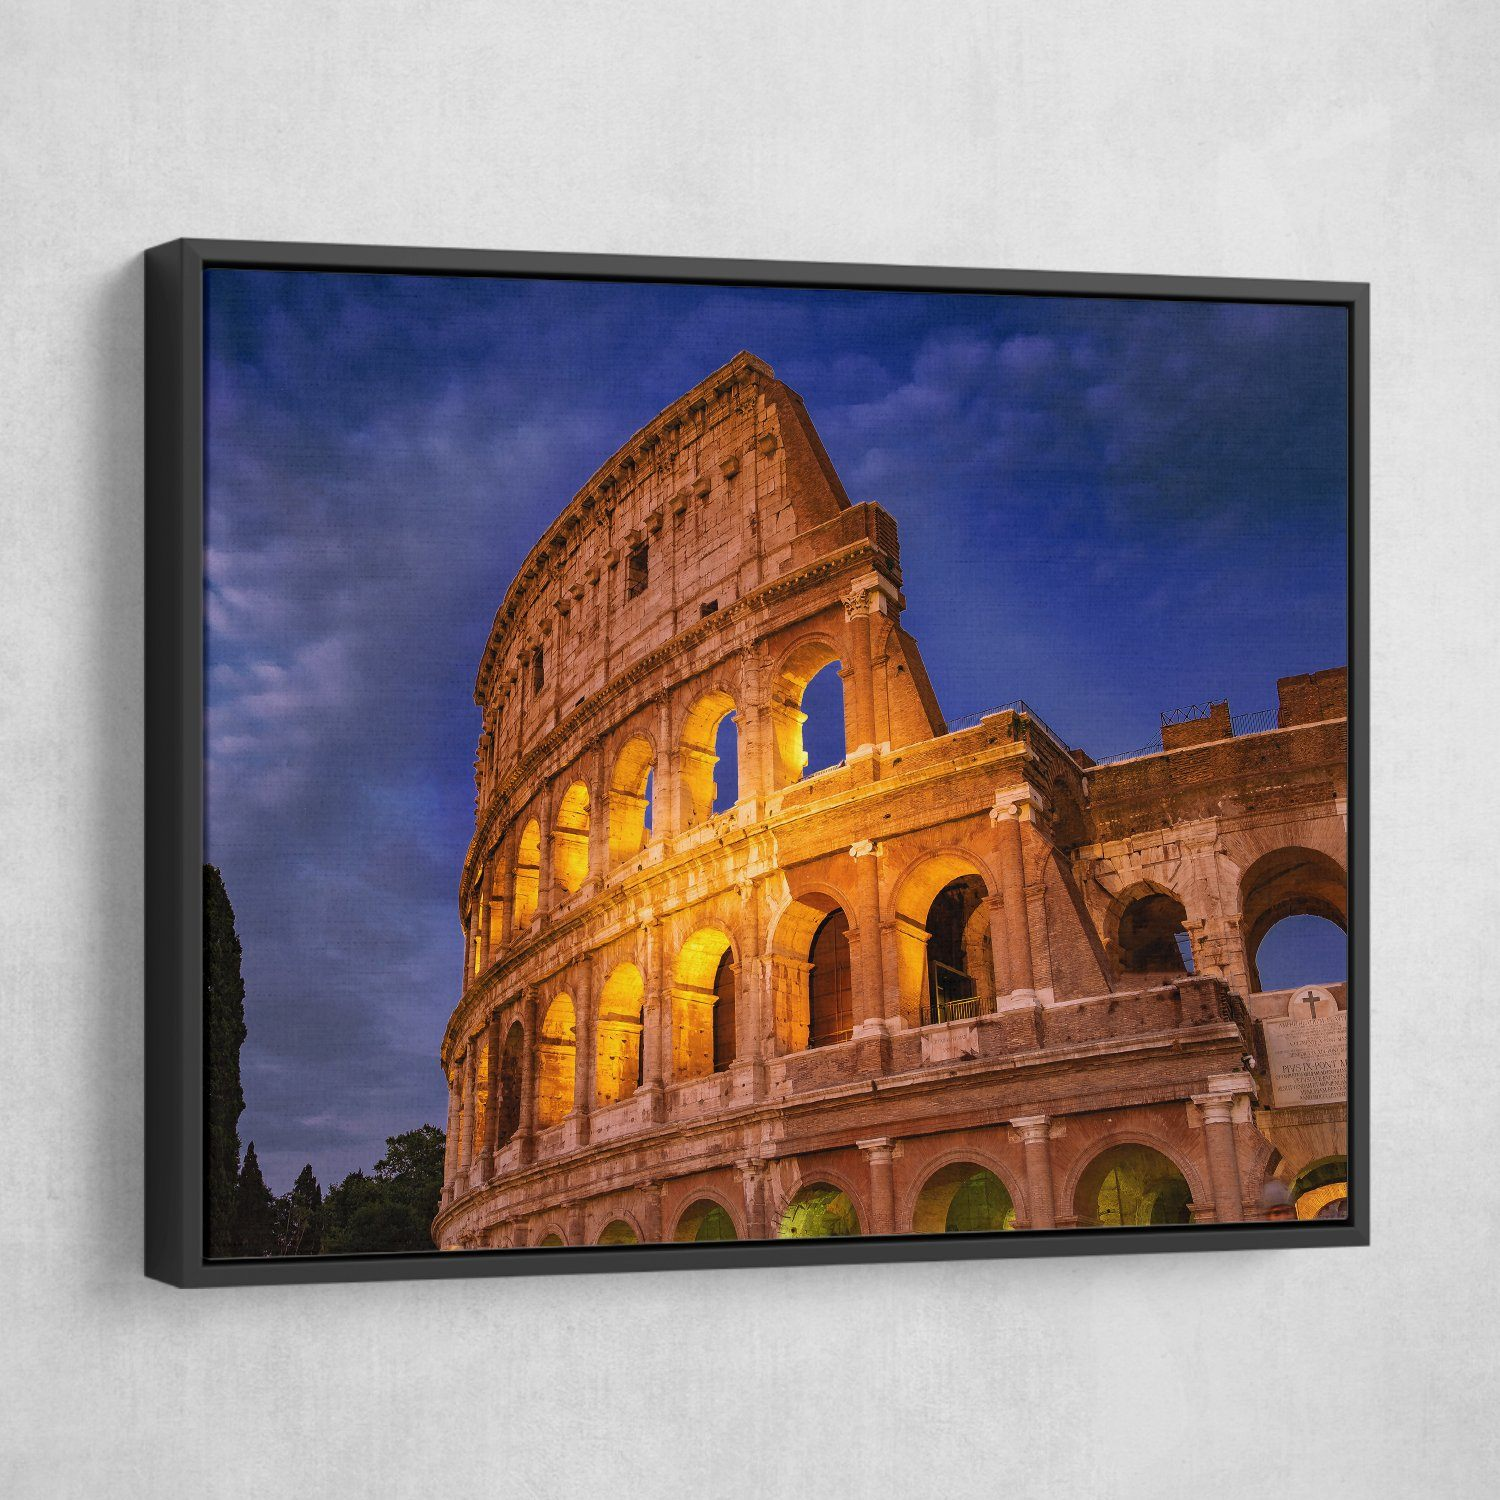 Colosseum wall art black frame